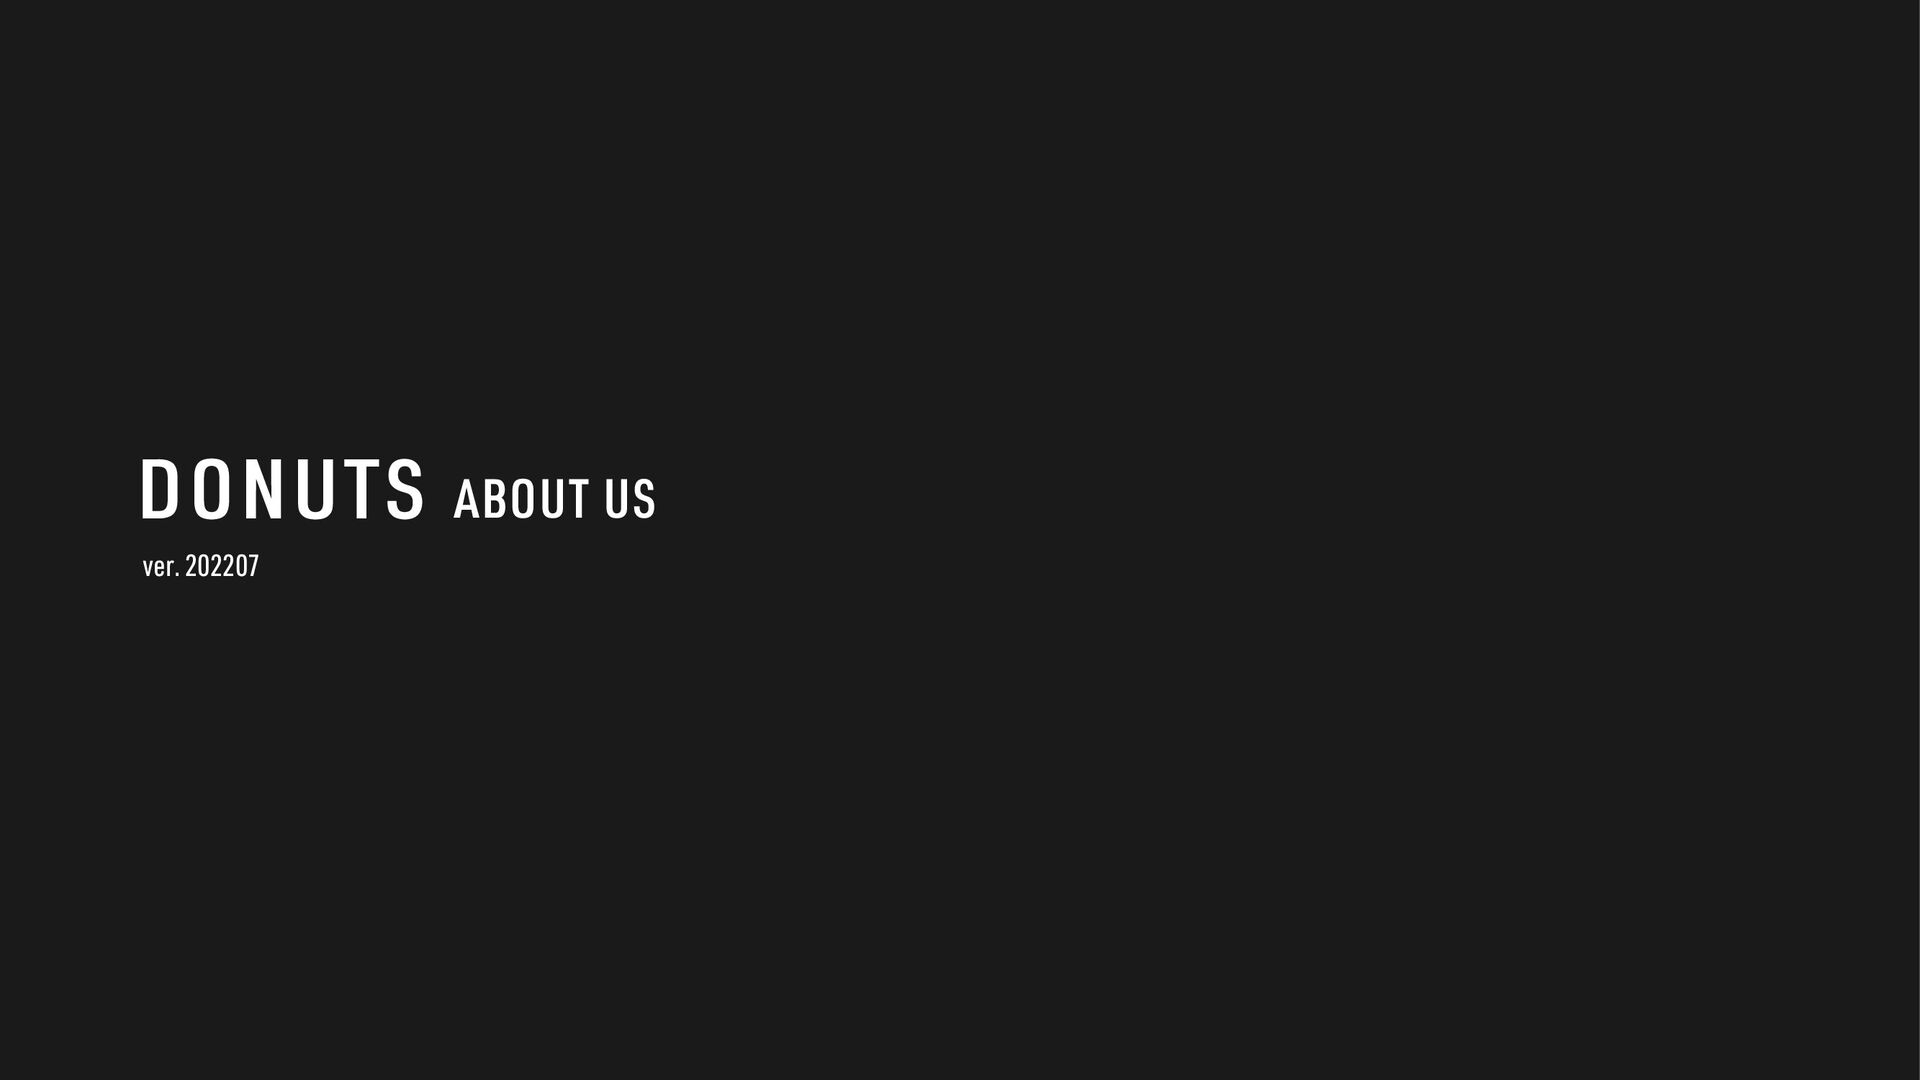 ver. 202105 ABOUT US